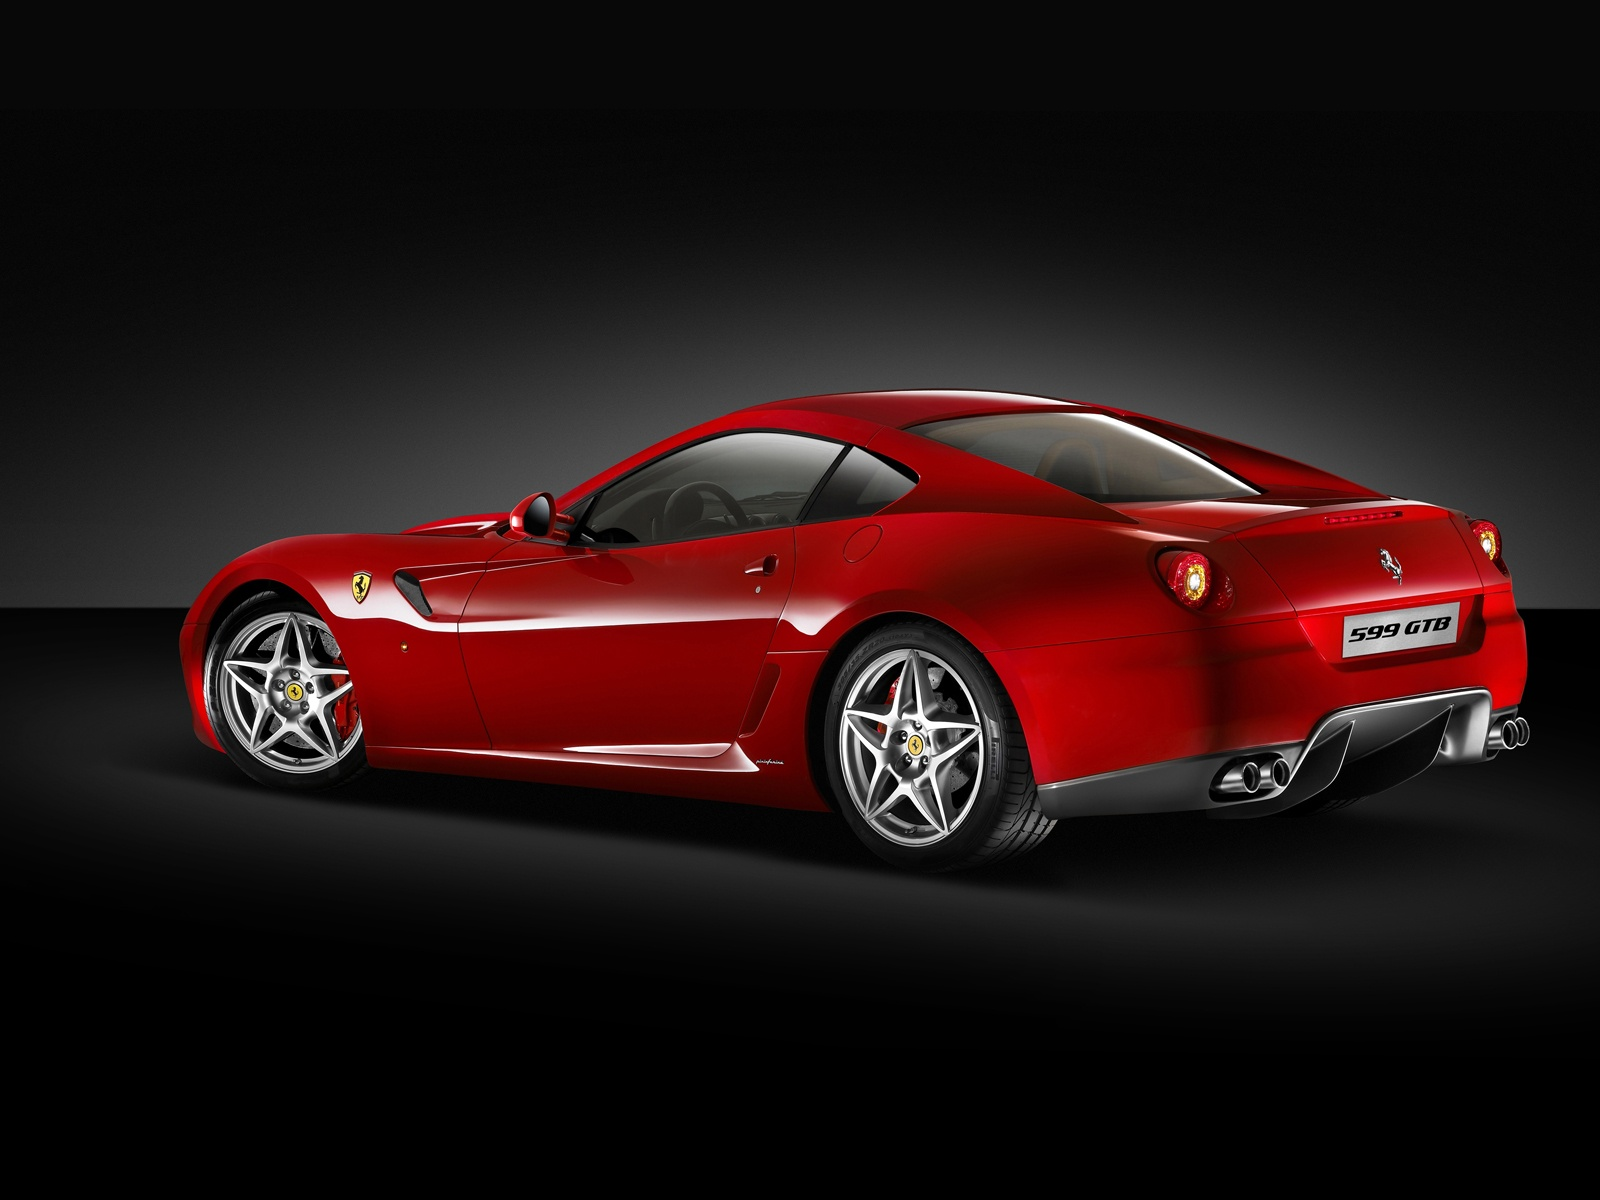 Ferrari 599 GTB Fiorano Seit World Cars Desktop Background